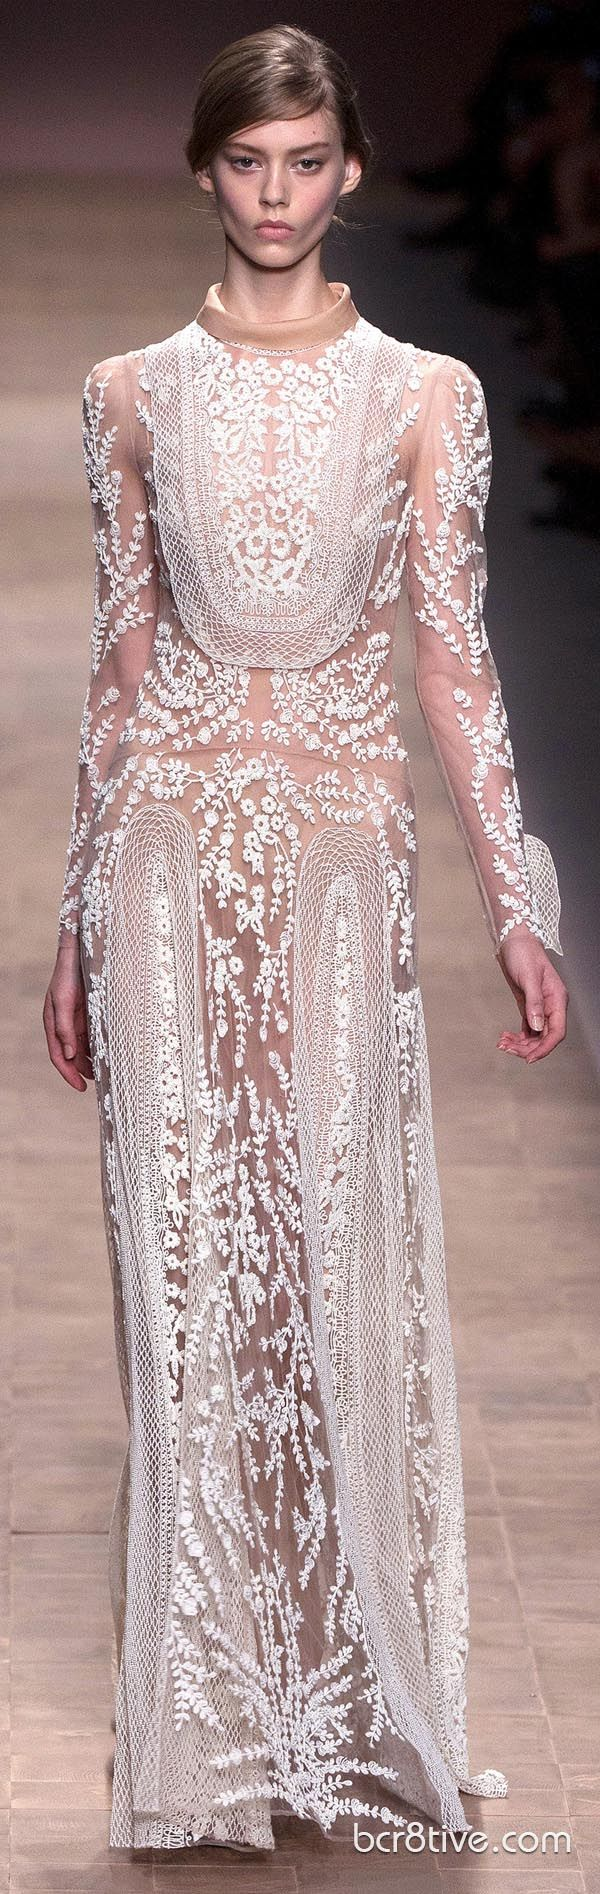 Valentino S/S 2013 rtw Evening Gown #couture #fashion #style #designer